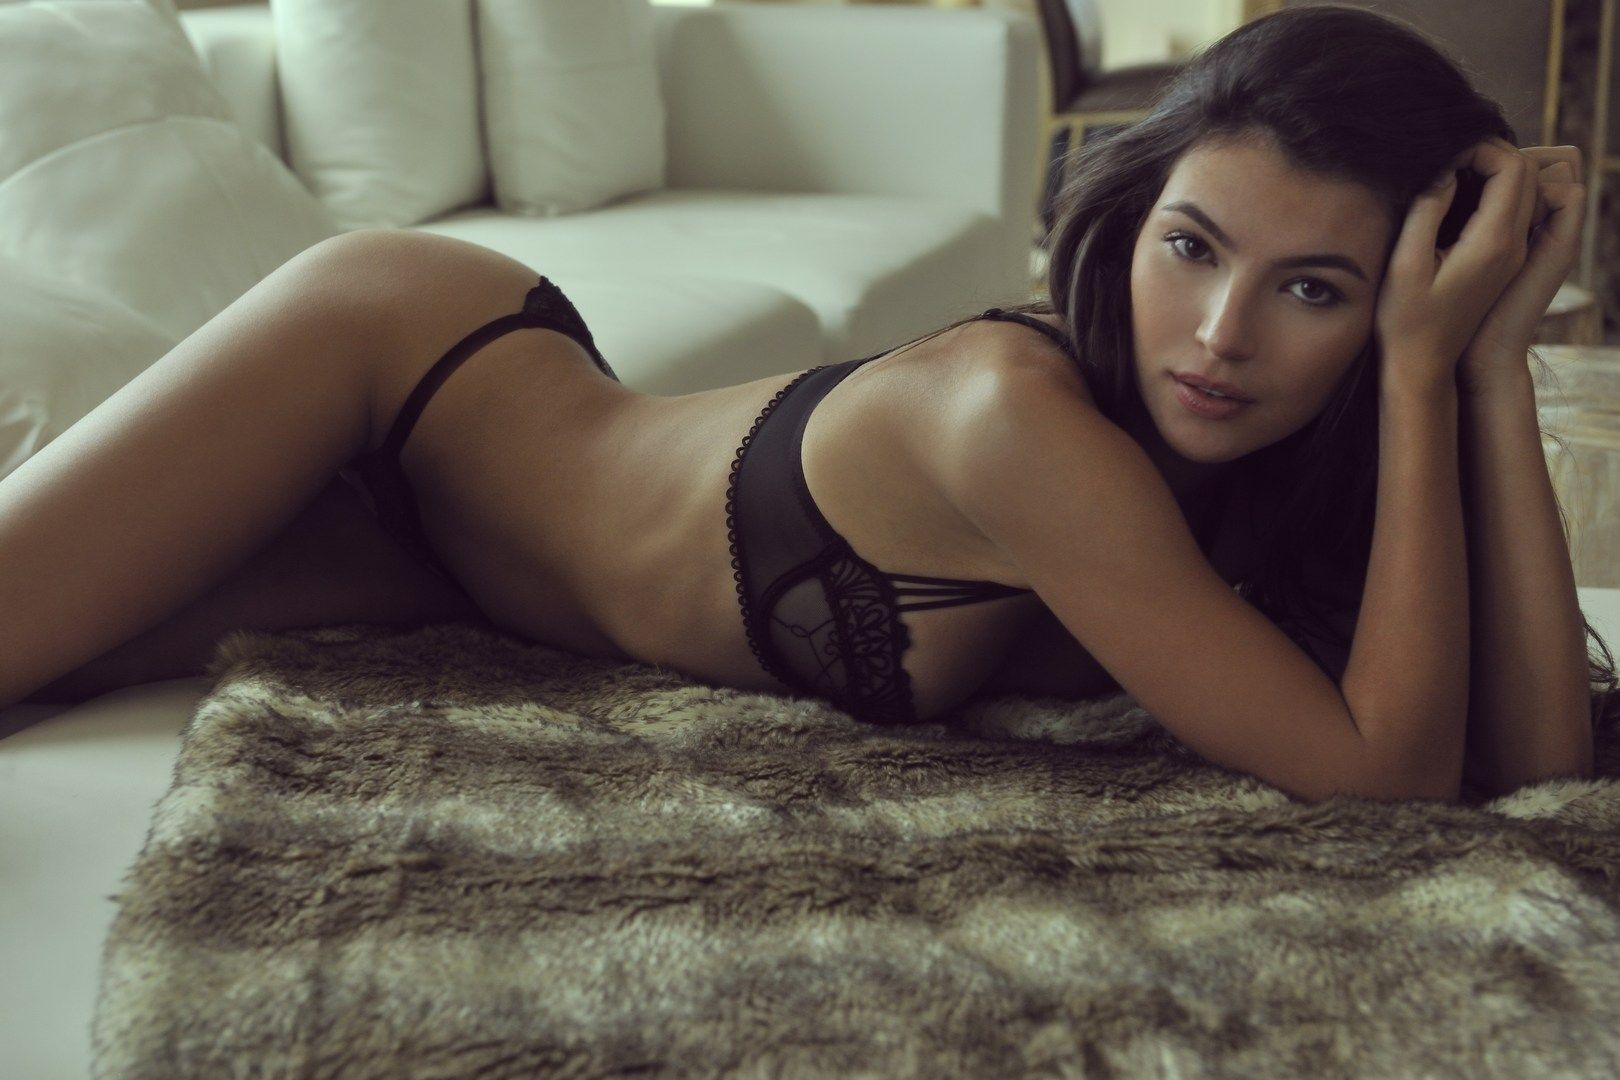 VixenX presents Monica Asis in Nude Couch Surfing  1201